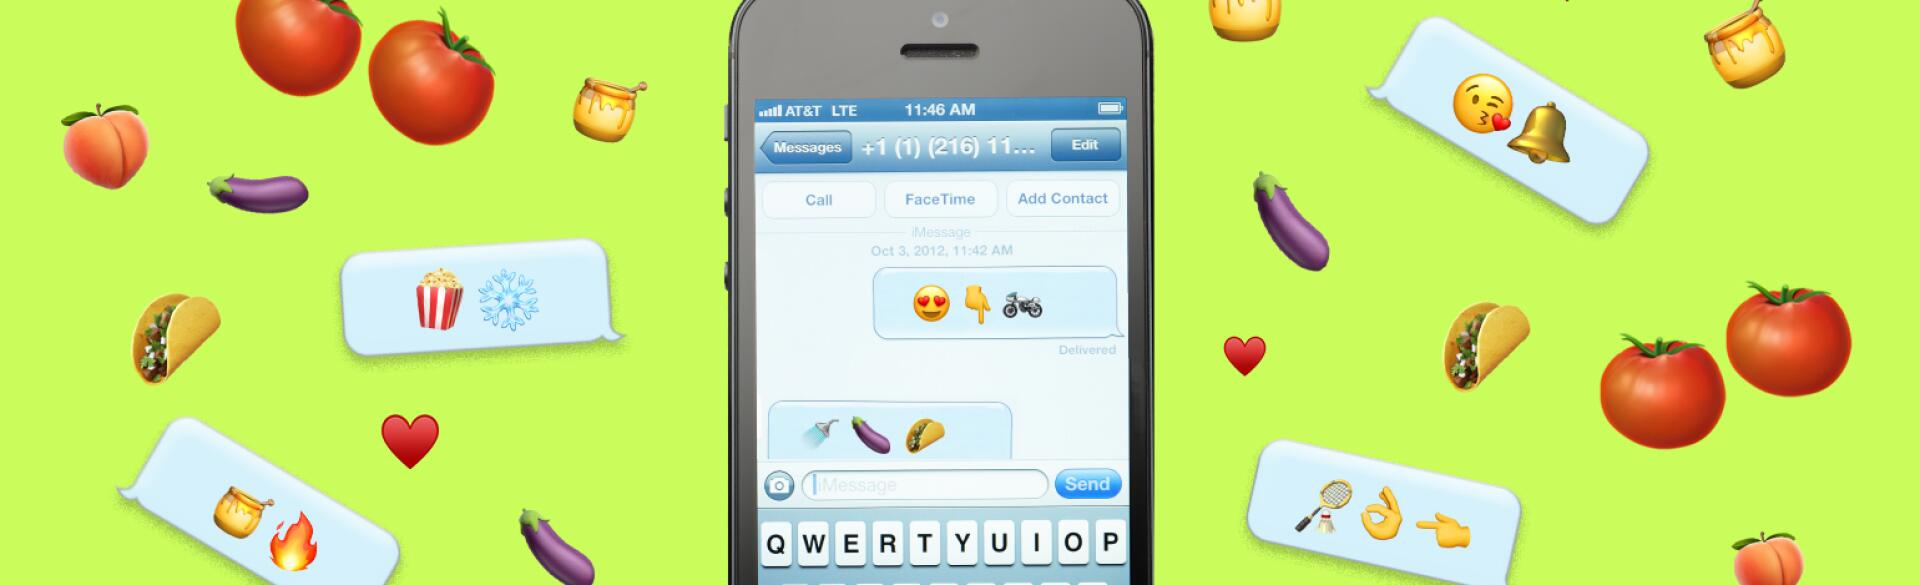 A graphic of a sexting conversation using various emojis on a cellphone. The cellphone is surrounded by various other emojis.